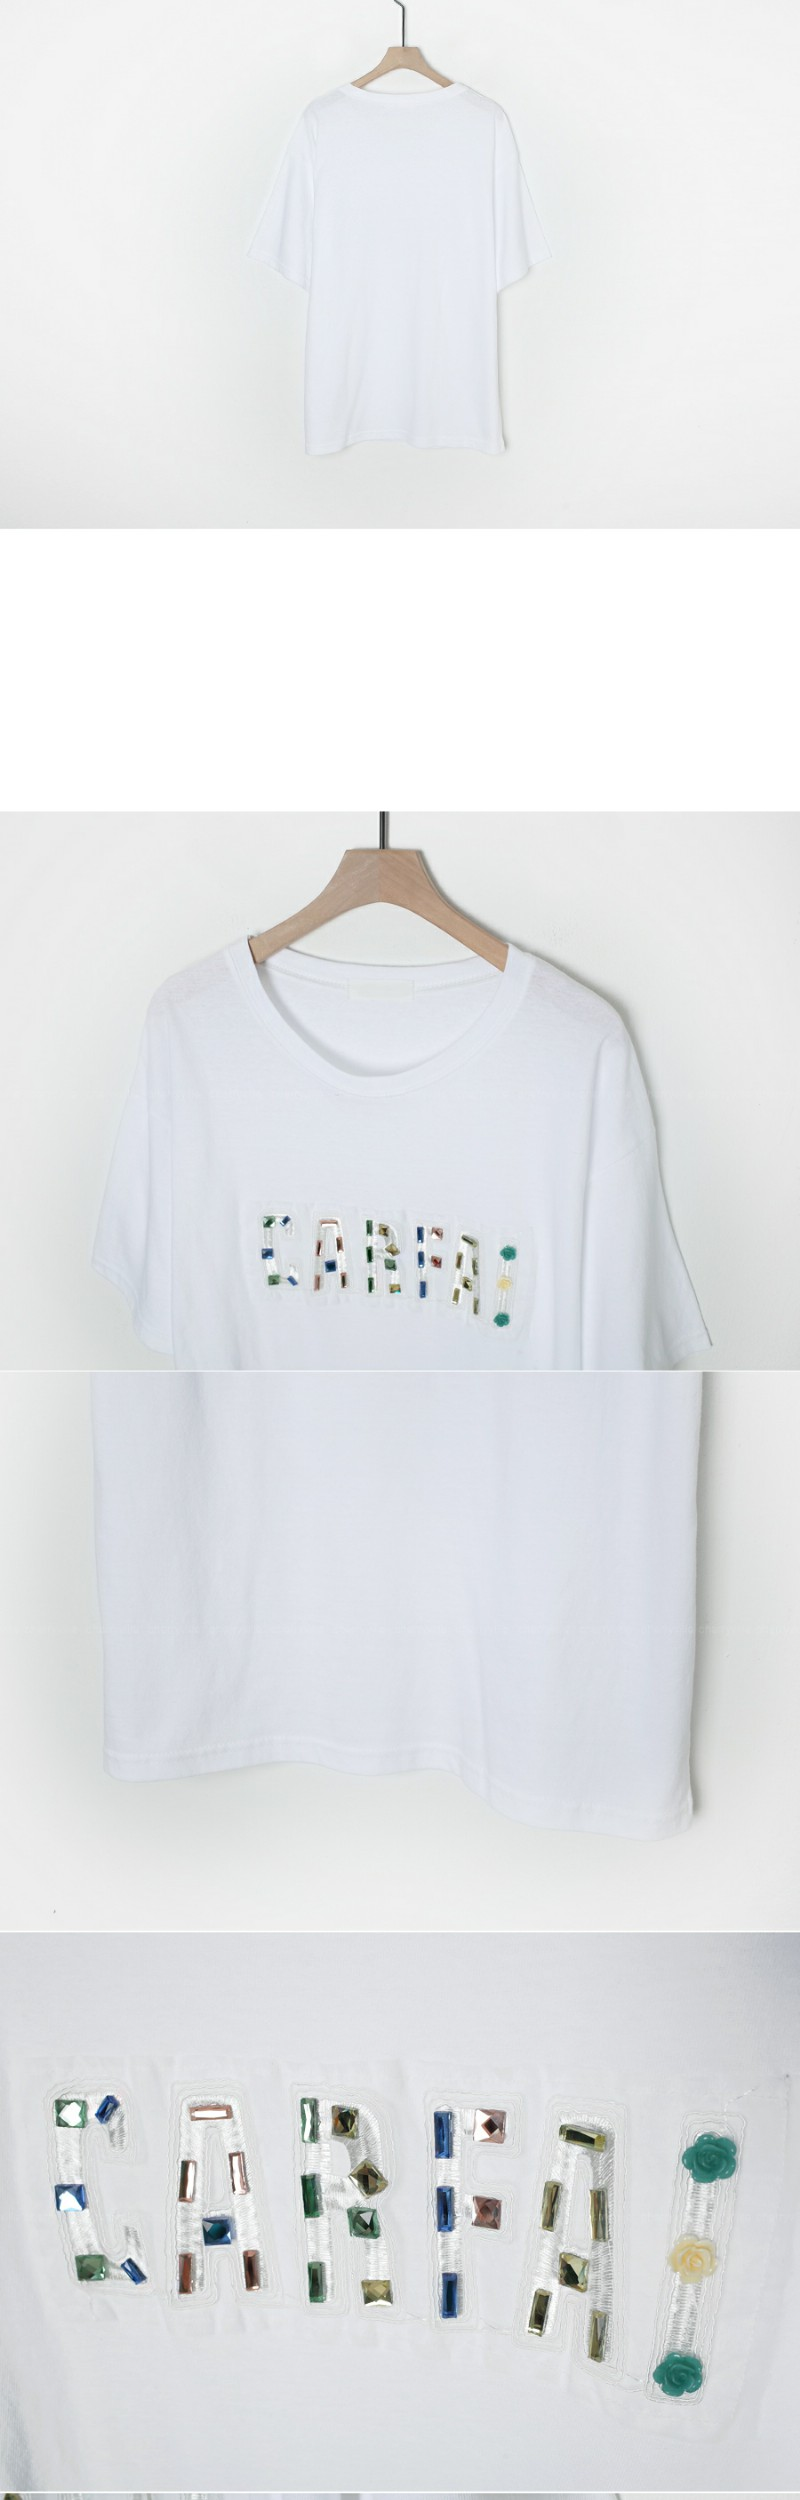 Cubic this pretty tee